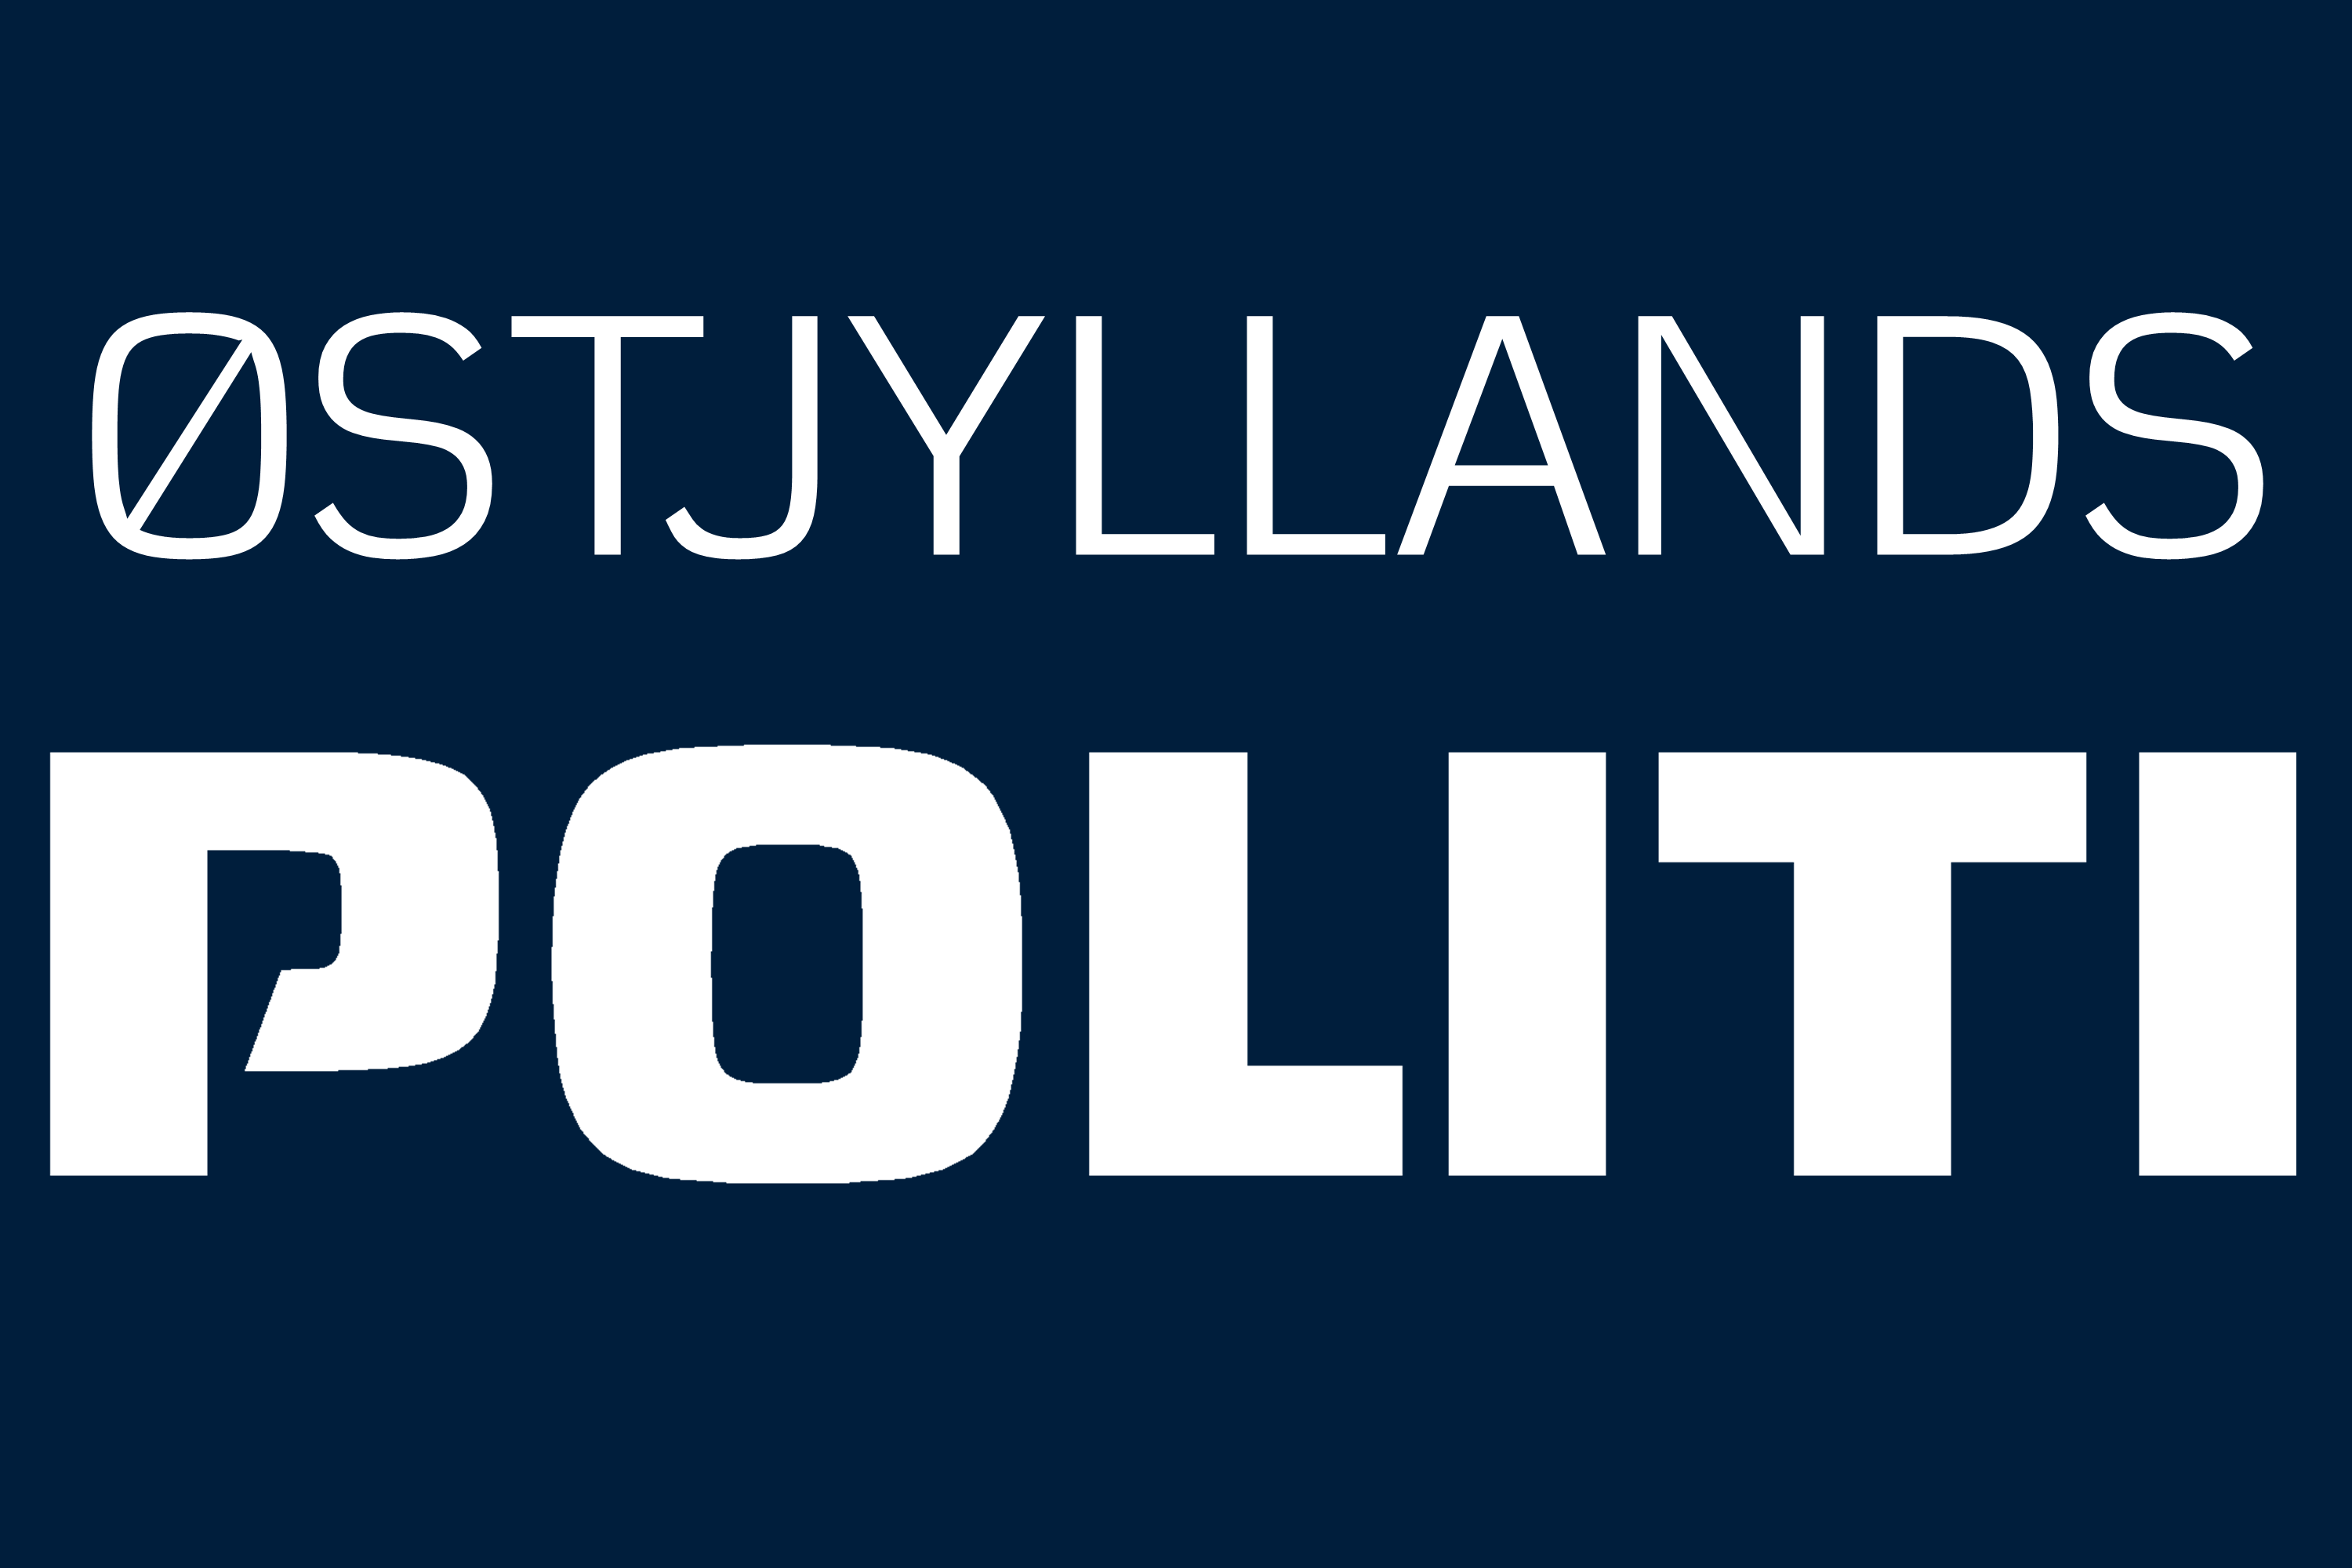 Kredslogo for Østjyllands Politi